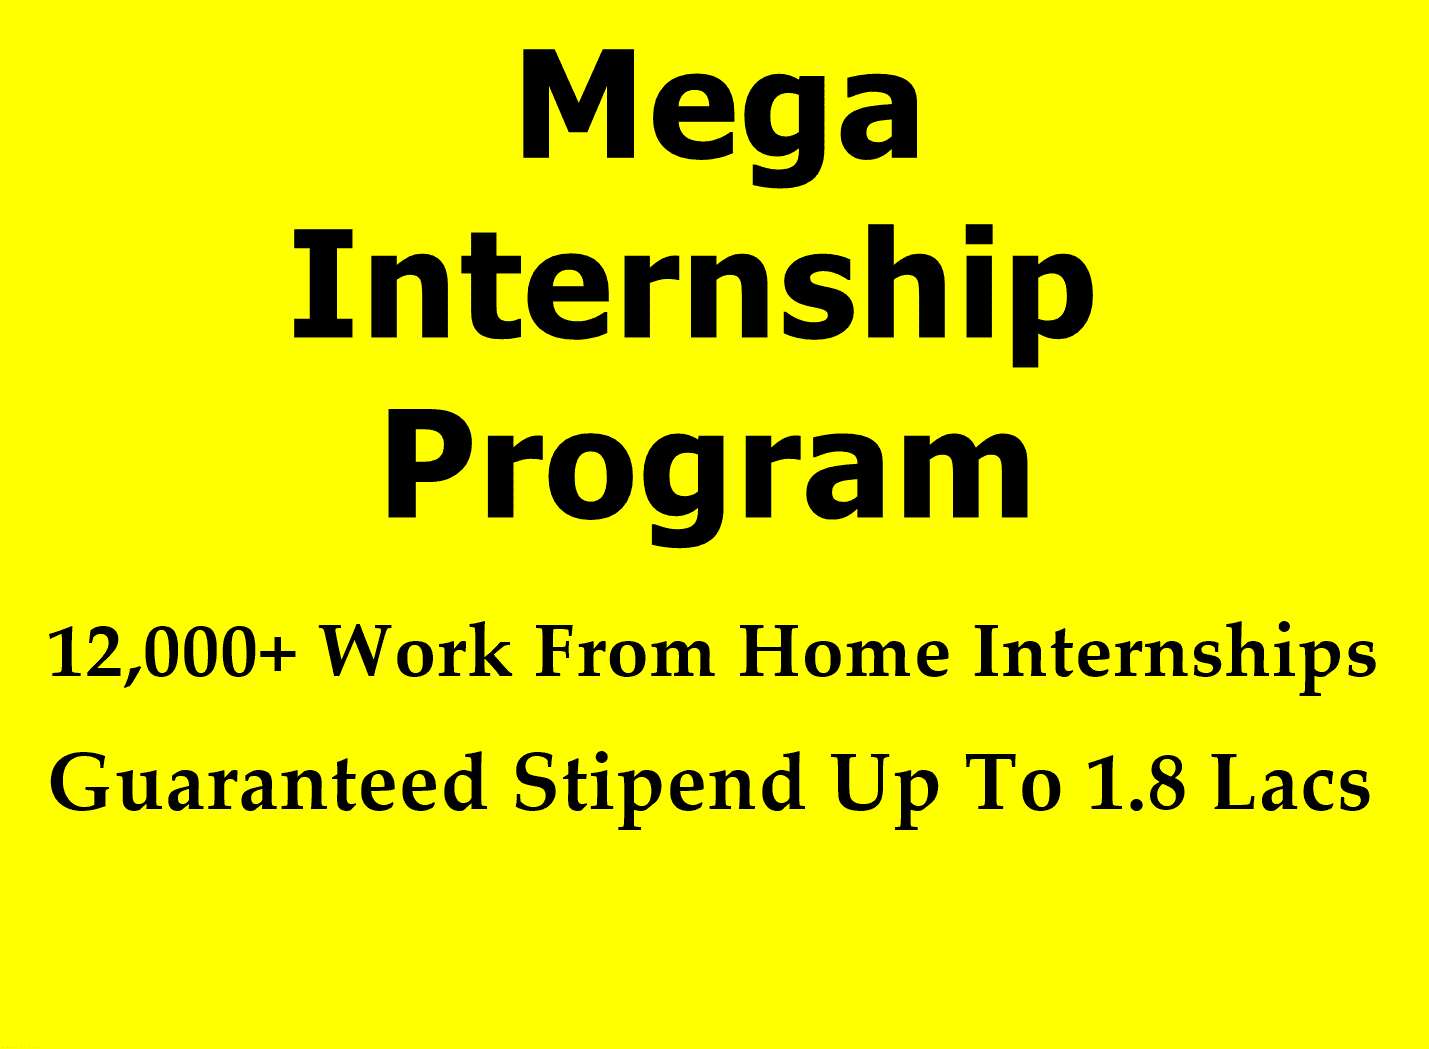 Mega Internships Program | 12,000+ Work From Home Internships | Guaranteed Stipend Up To 1.8 Lacs | Win Rewards Up To 10,000